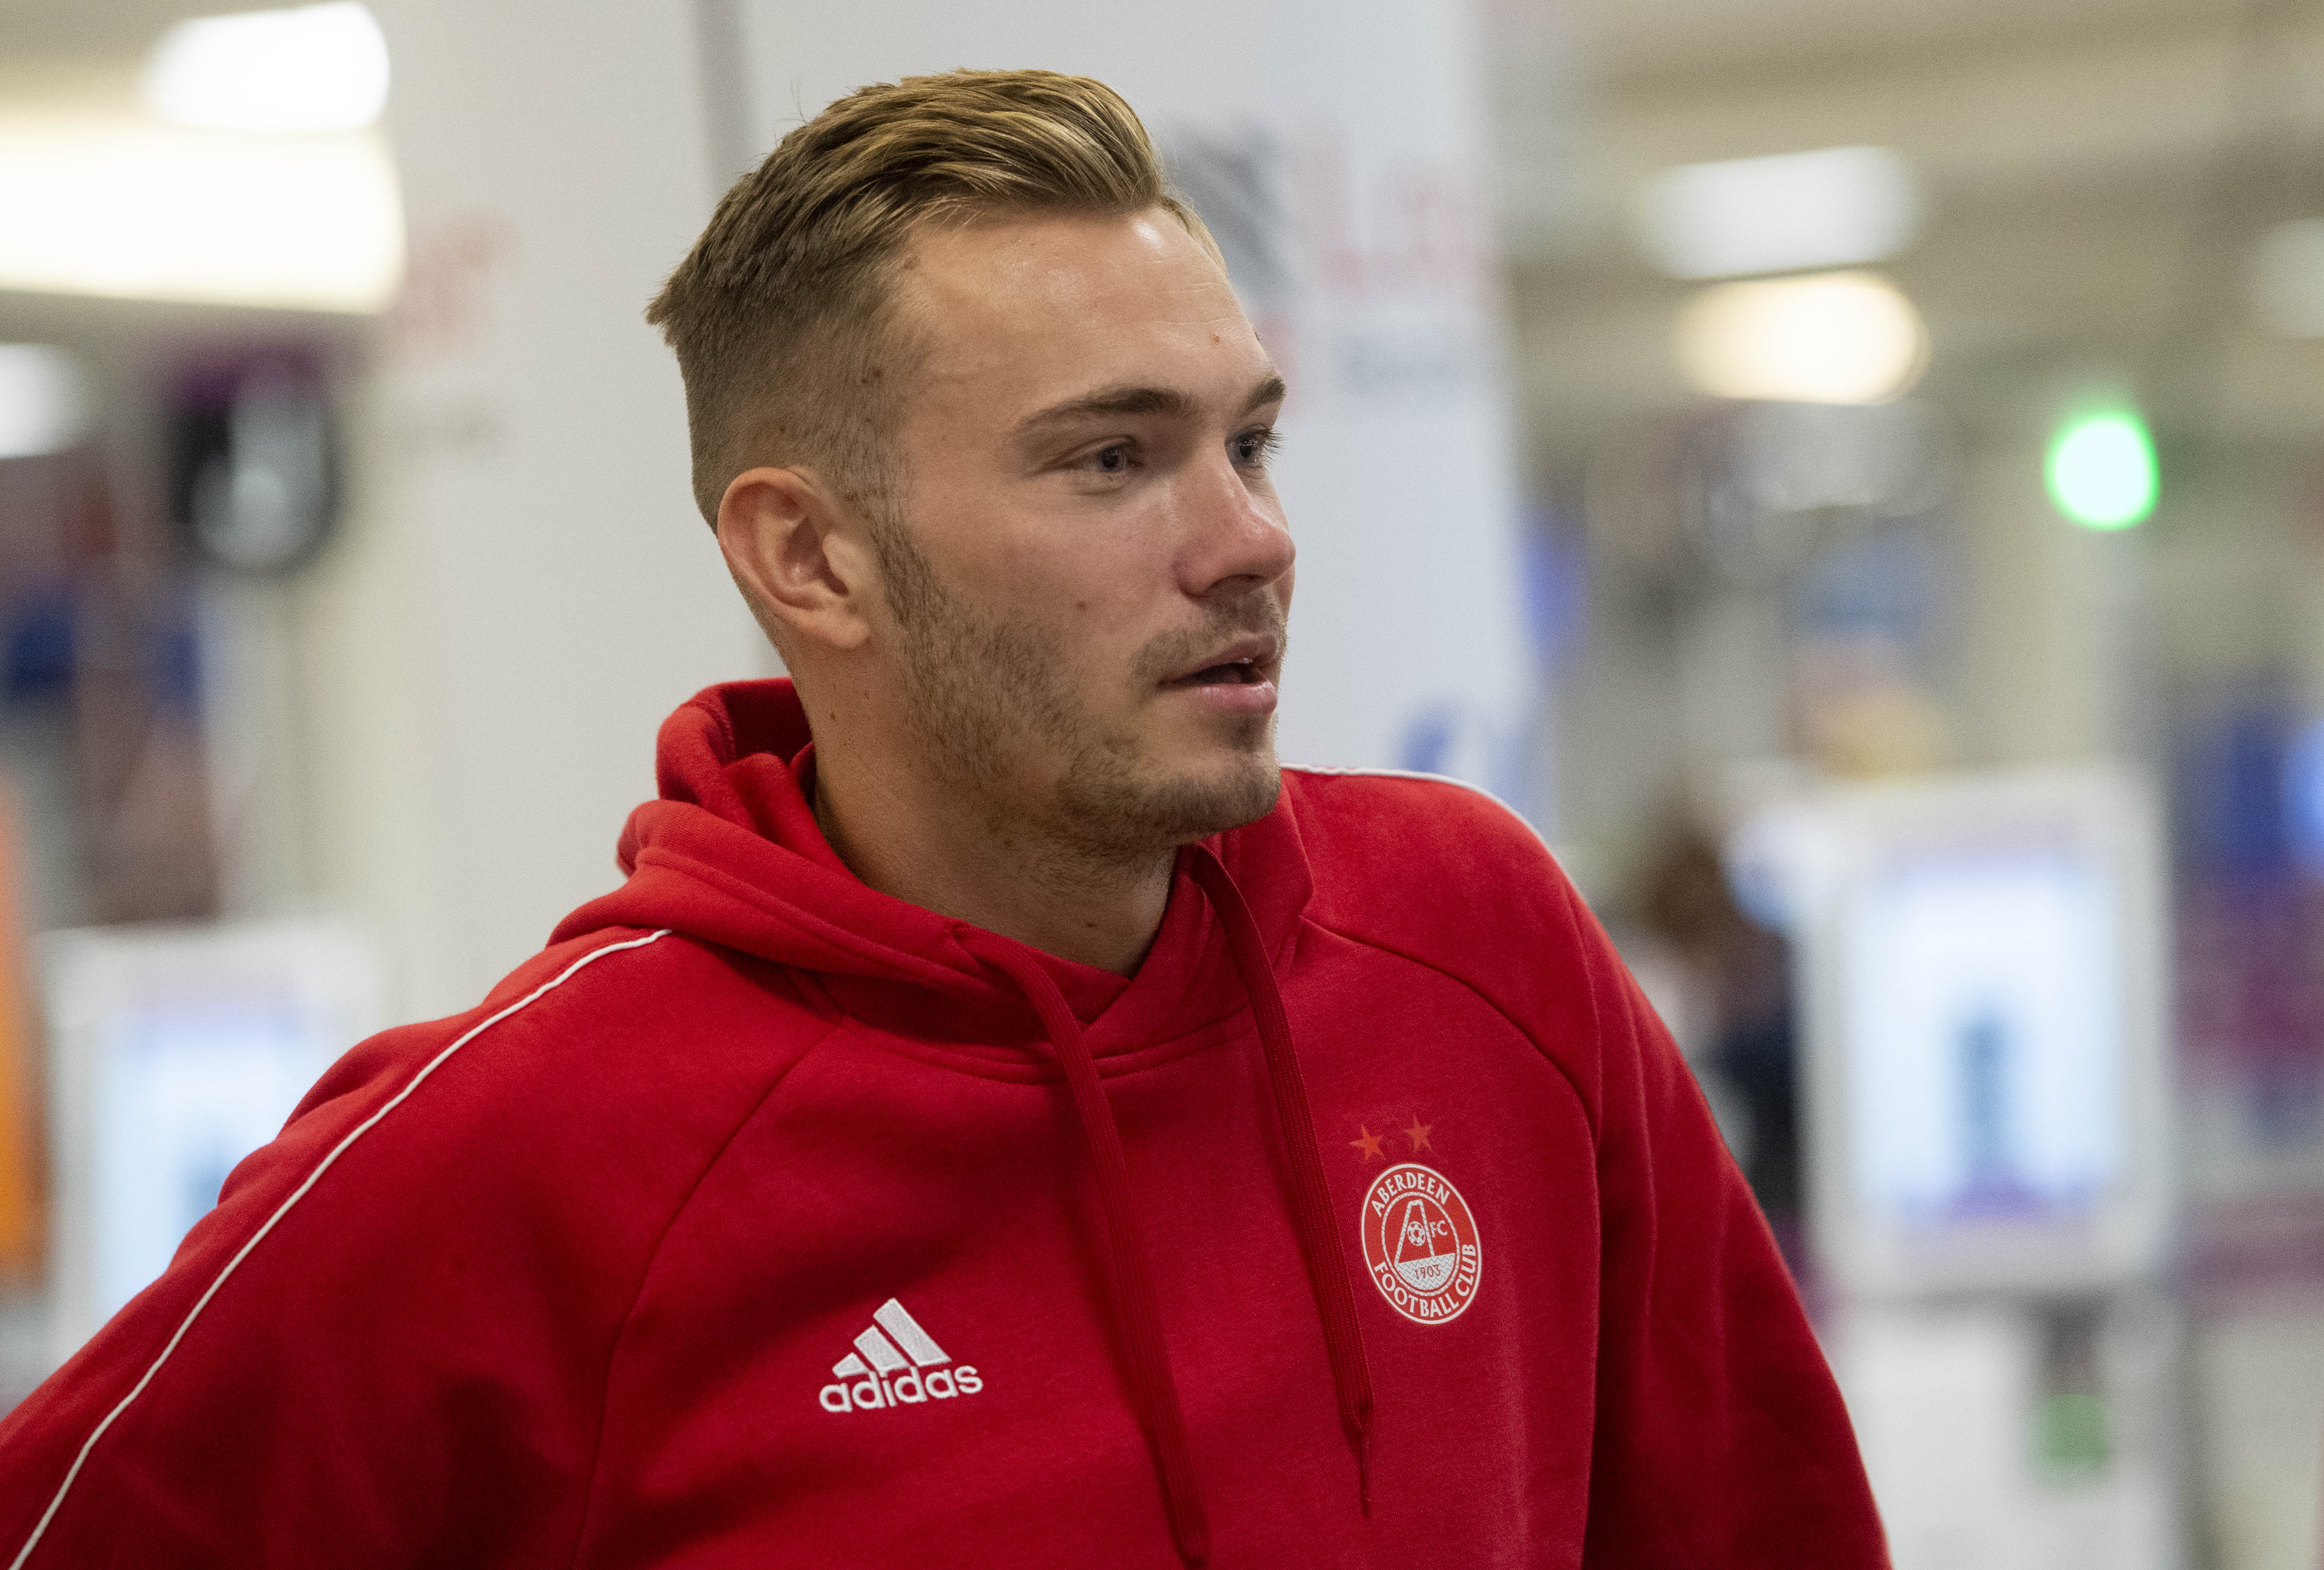 Aberdeen's Ryan Hedges arrives at Edinburgh Airport as the players depart for Ireland.